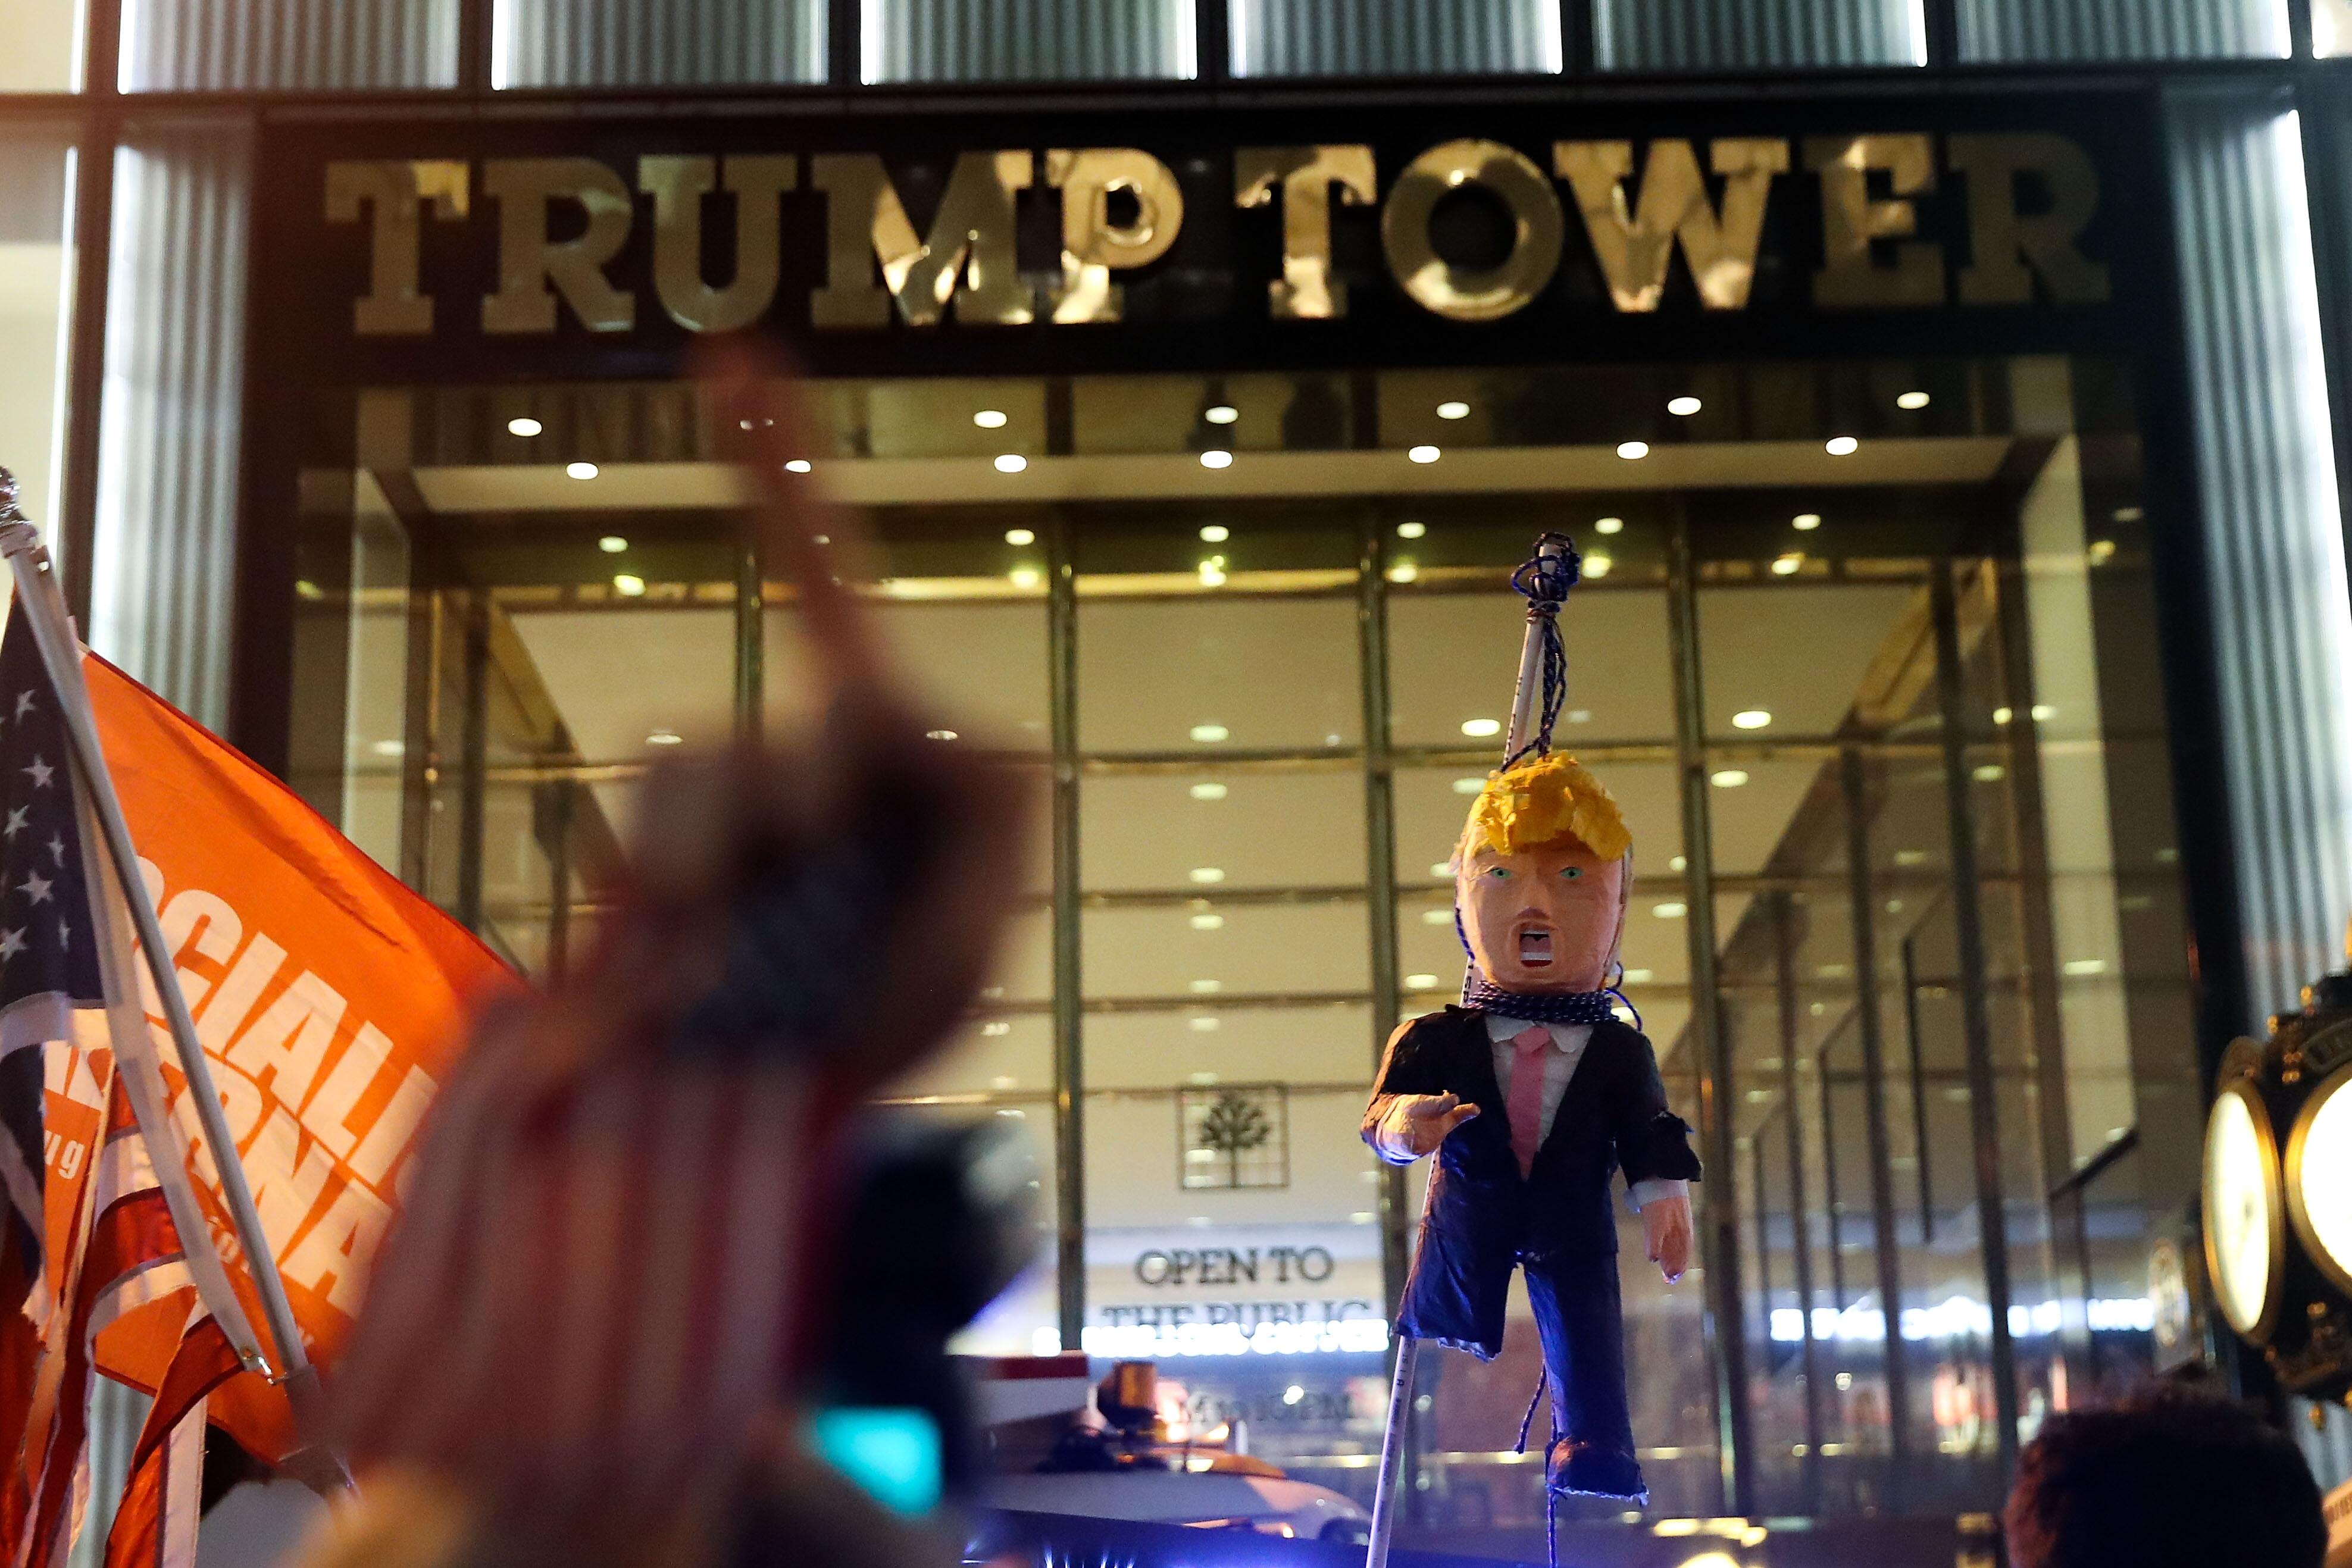 Bild zu US-Wahl, Donald Trump, Trump Tower, Demonstration